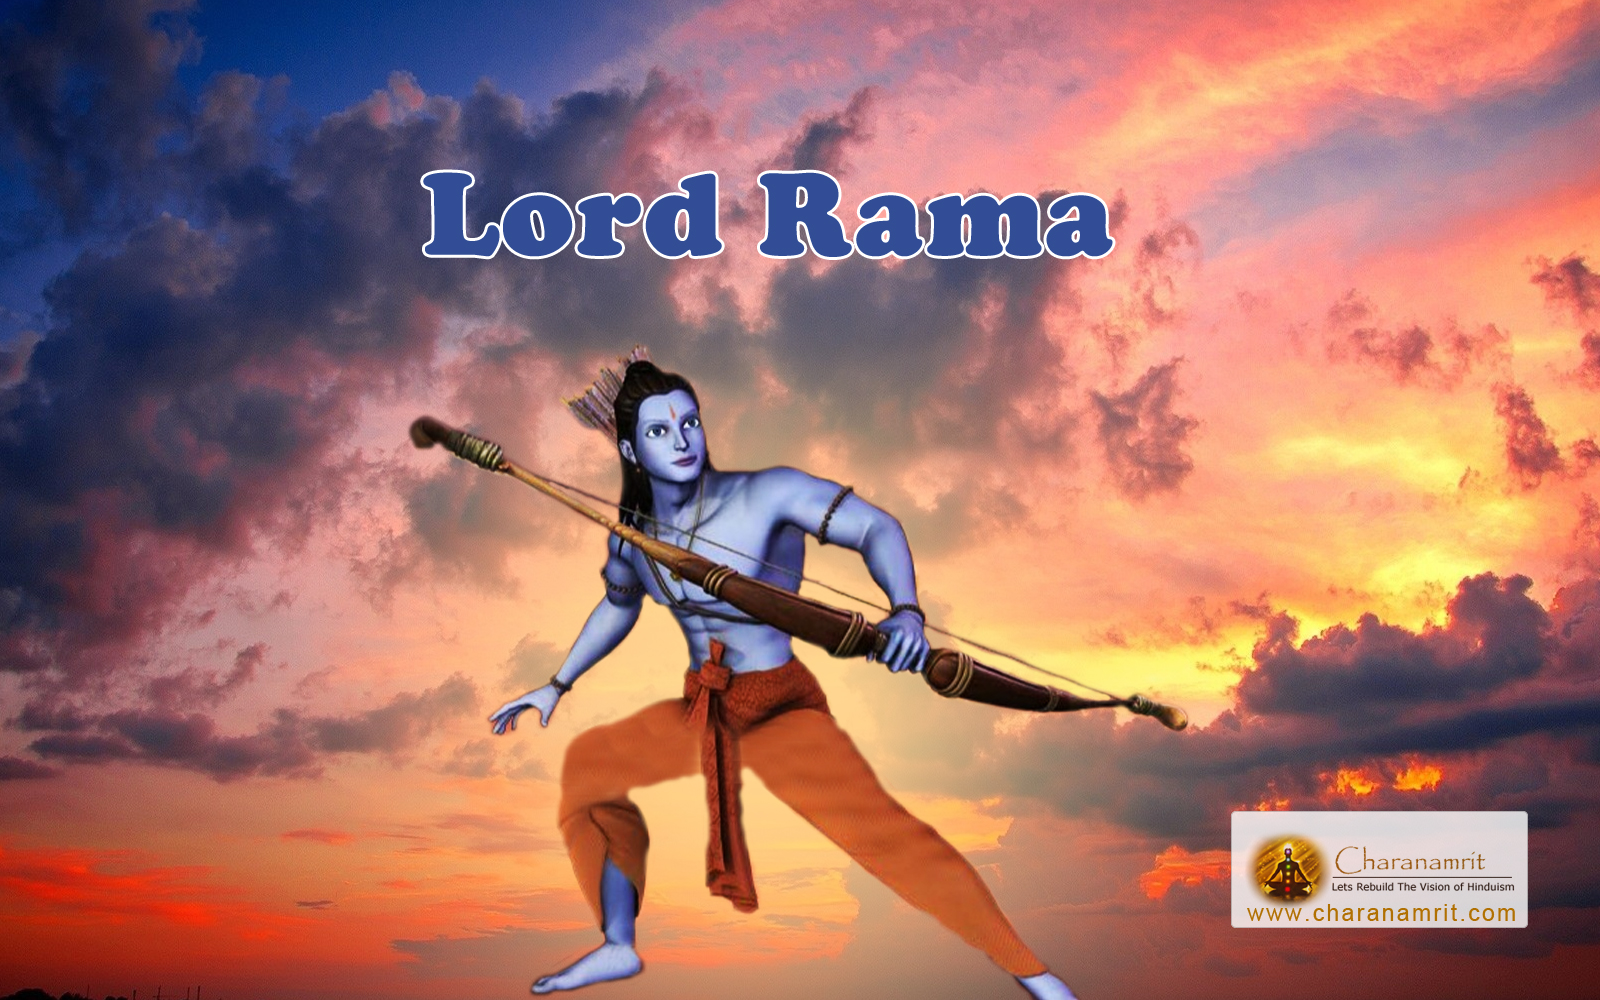 Free download 3D HD Wallpaper for download Lord Rama 3D HD